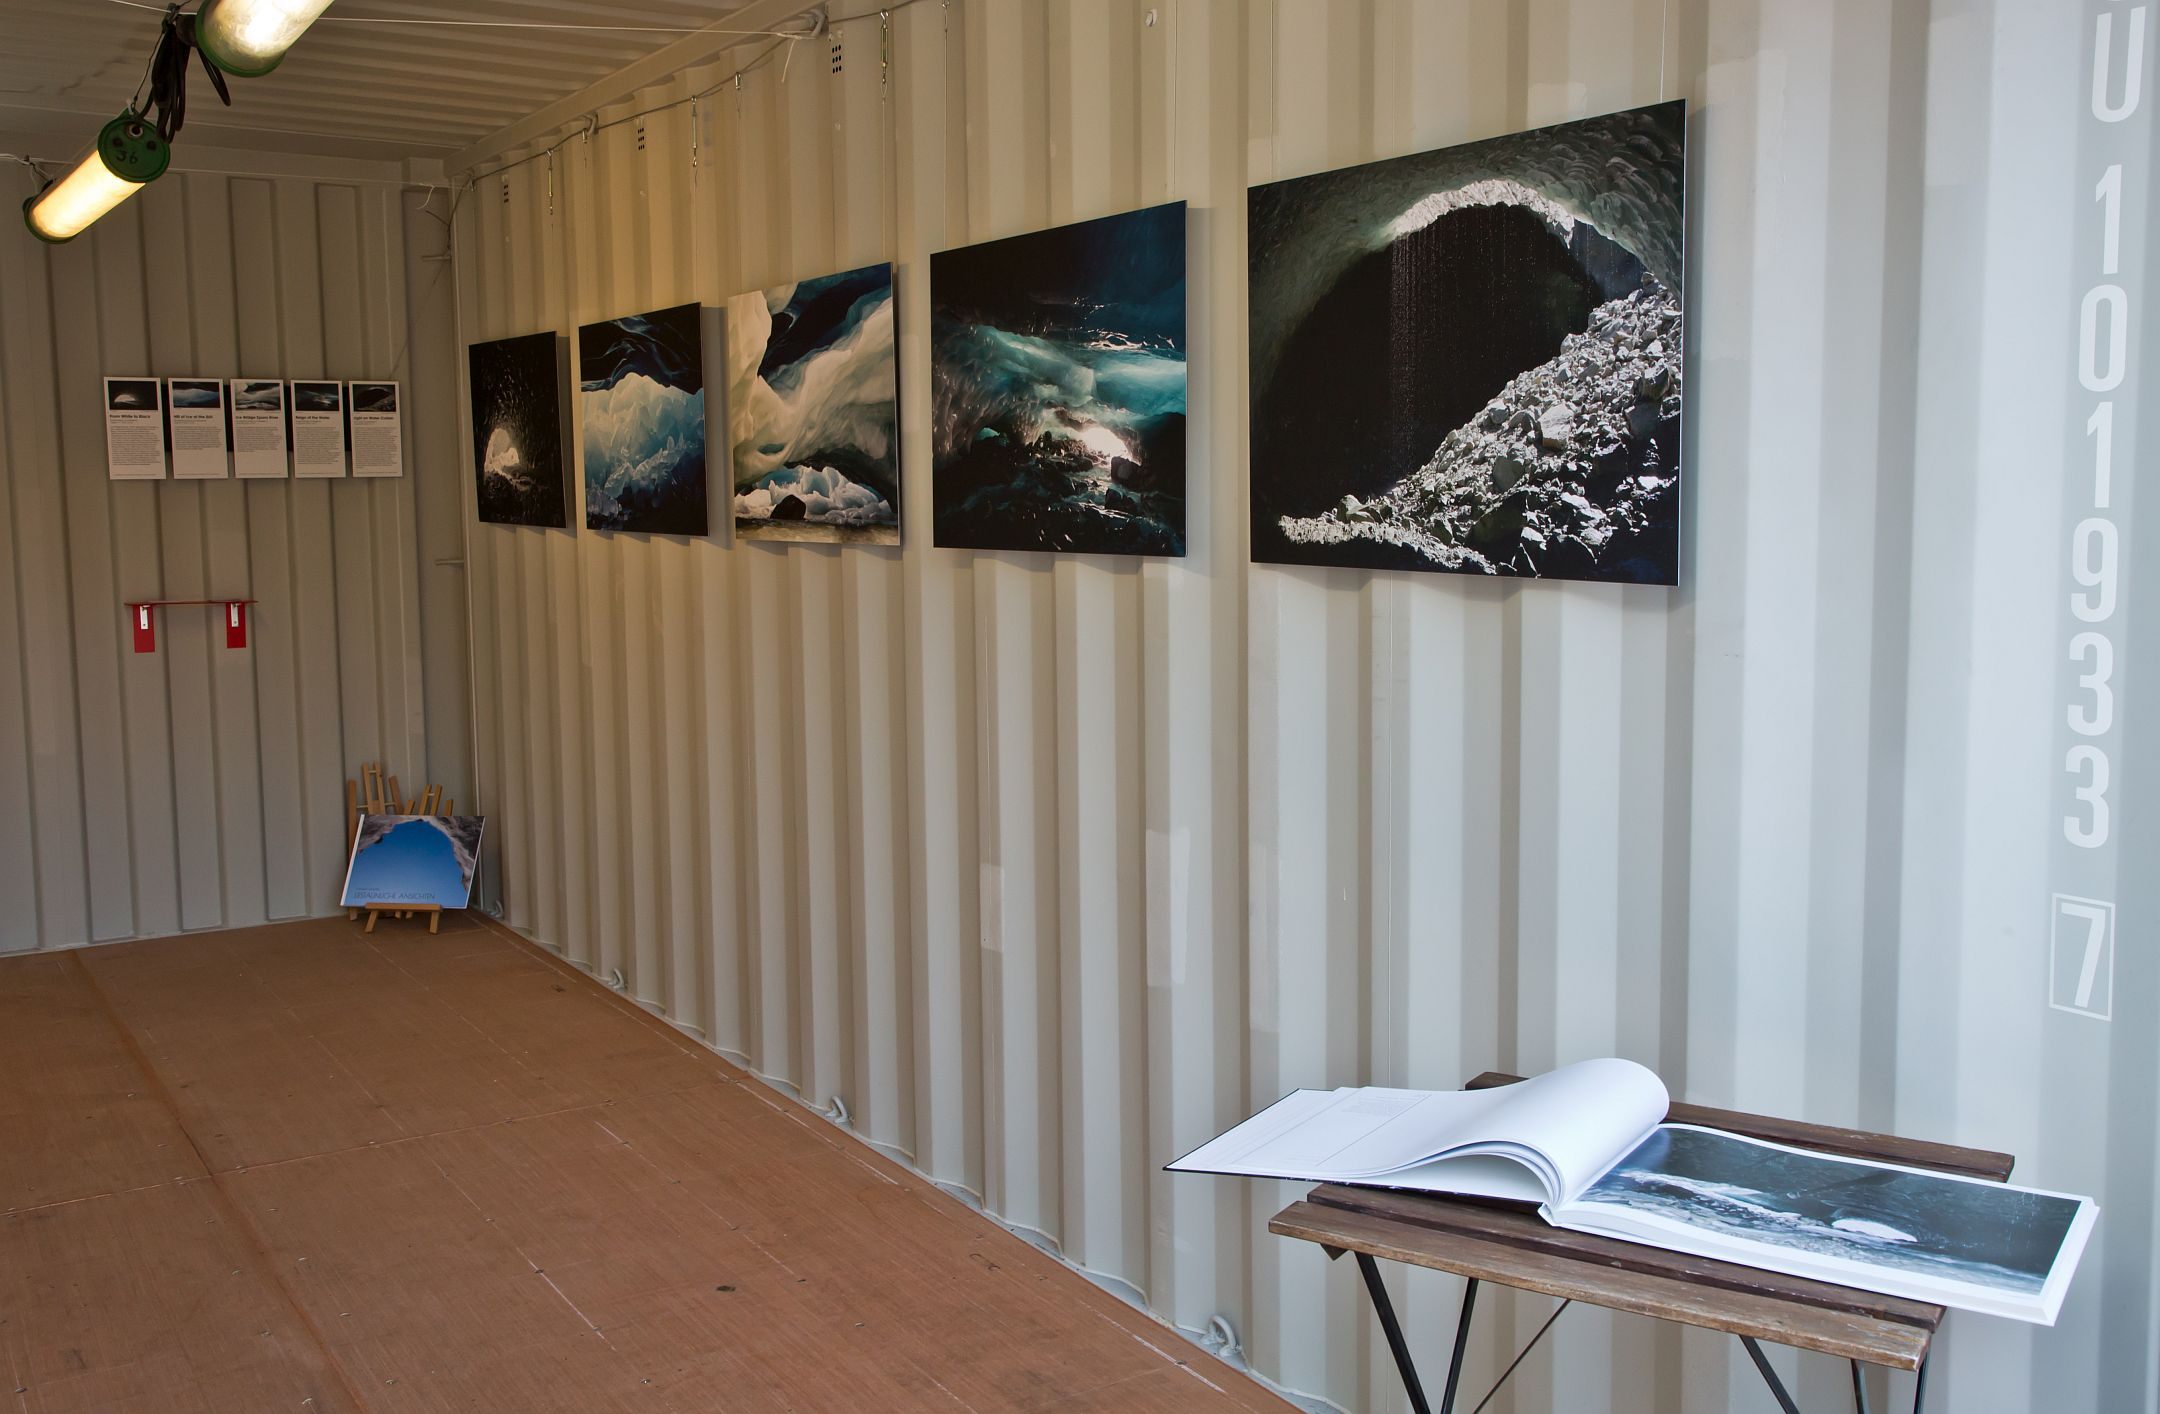 Rotterdam Photo Festival 2020 at Deliplein in the Katendrecht district. Pictures of Hanspeter Schachtler.